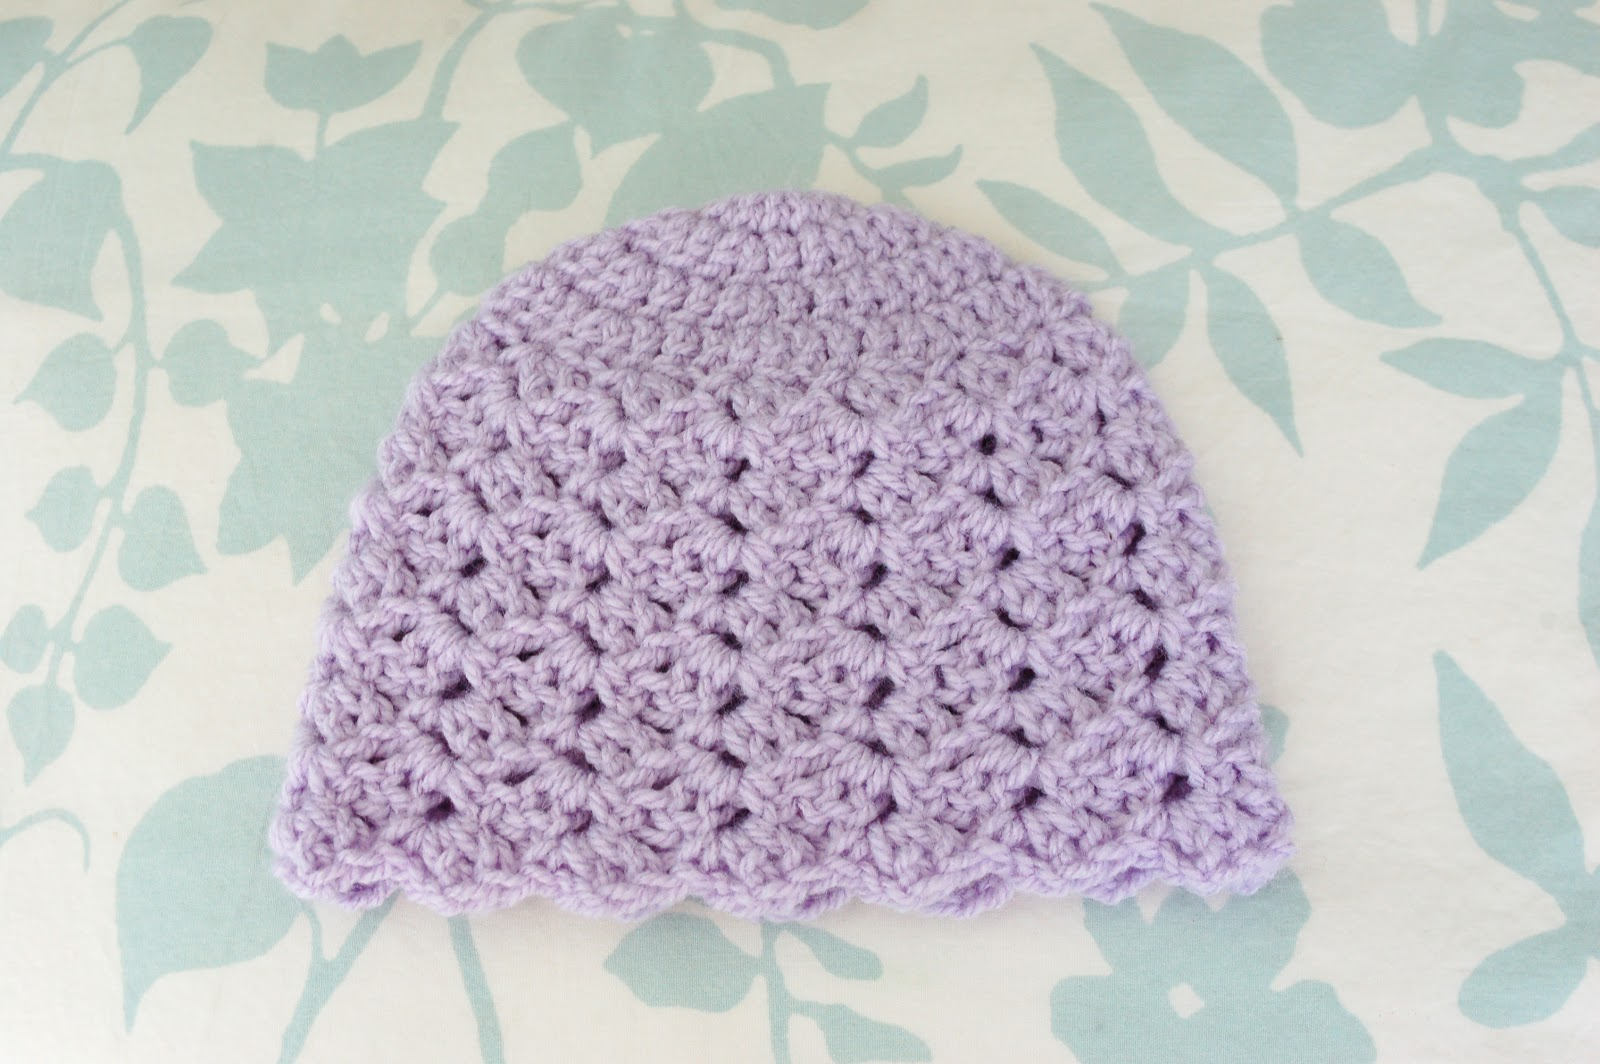 Free Crochet Patterns For A Baby Blanket : Alli Crafts: Free Pattern: Tulip Stitch Hat - Newborn